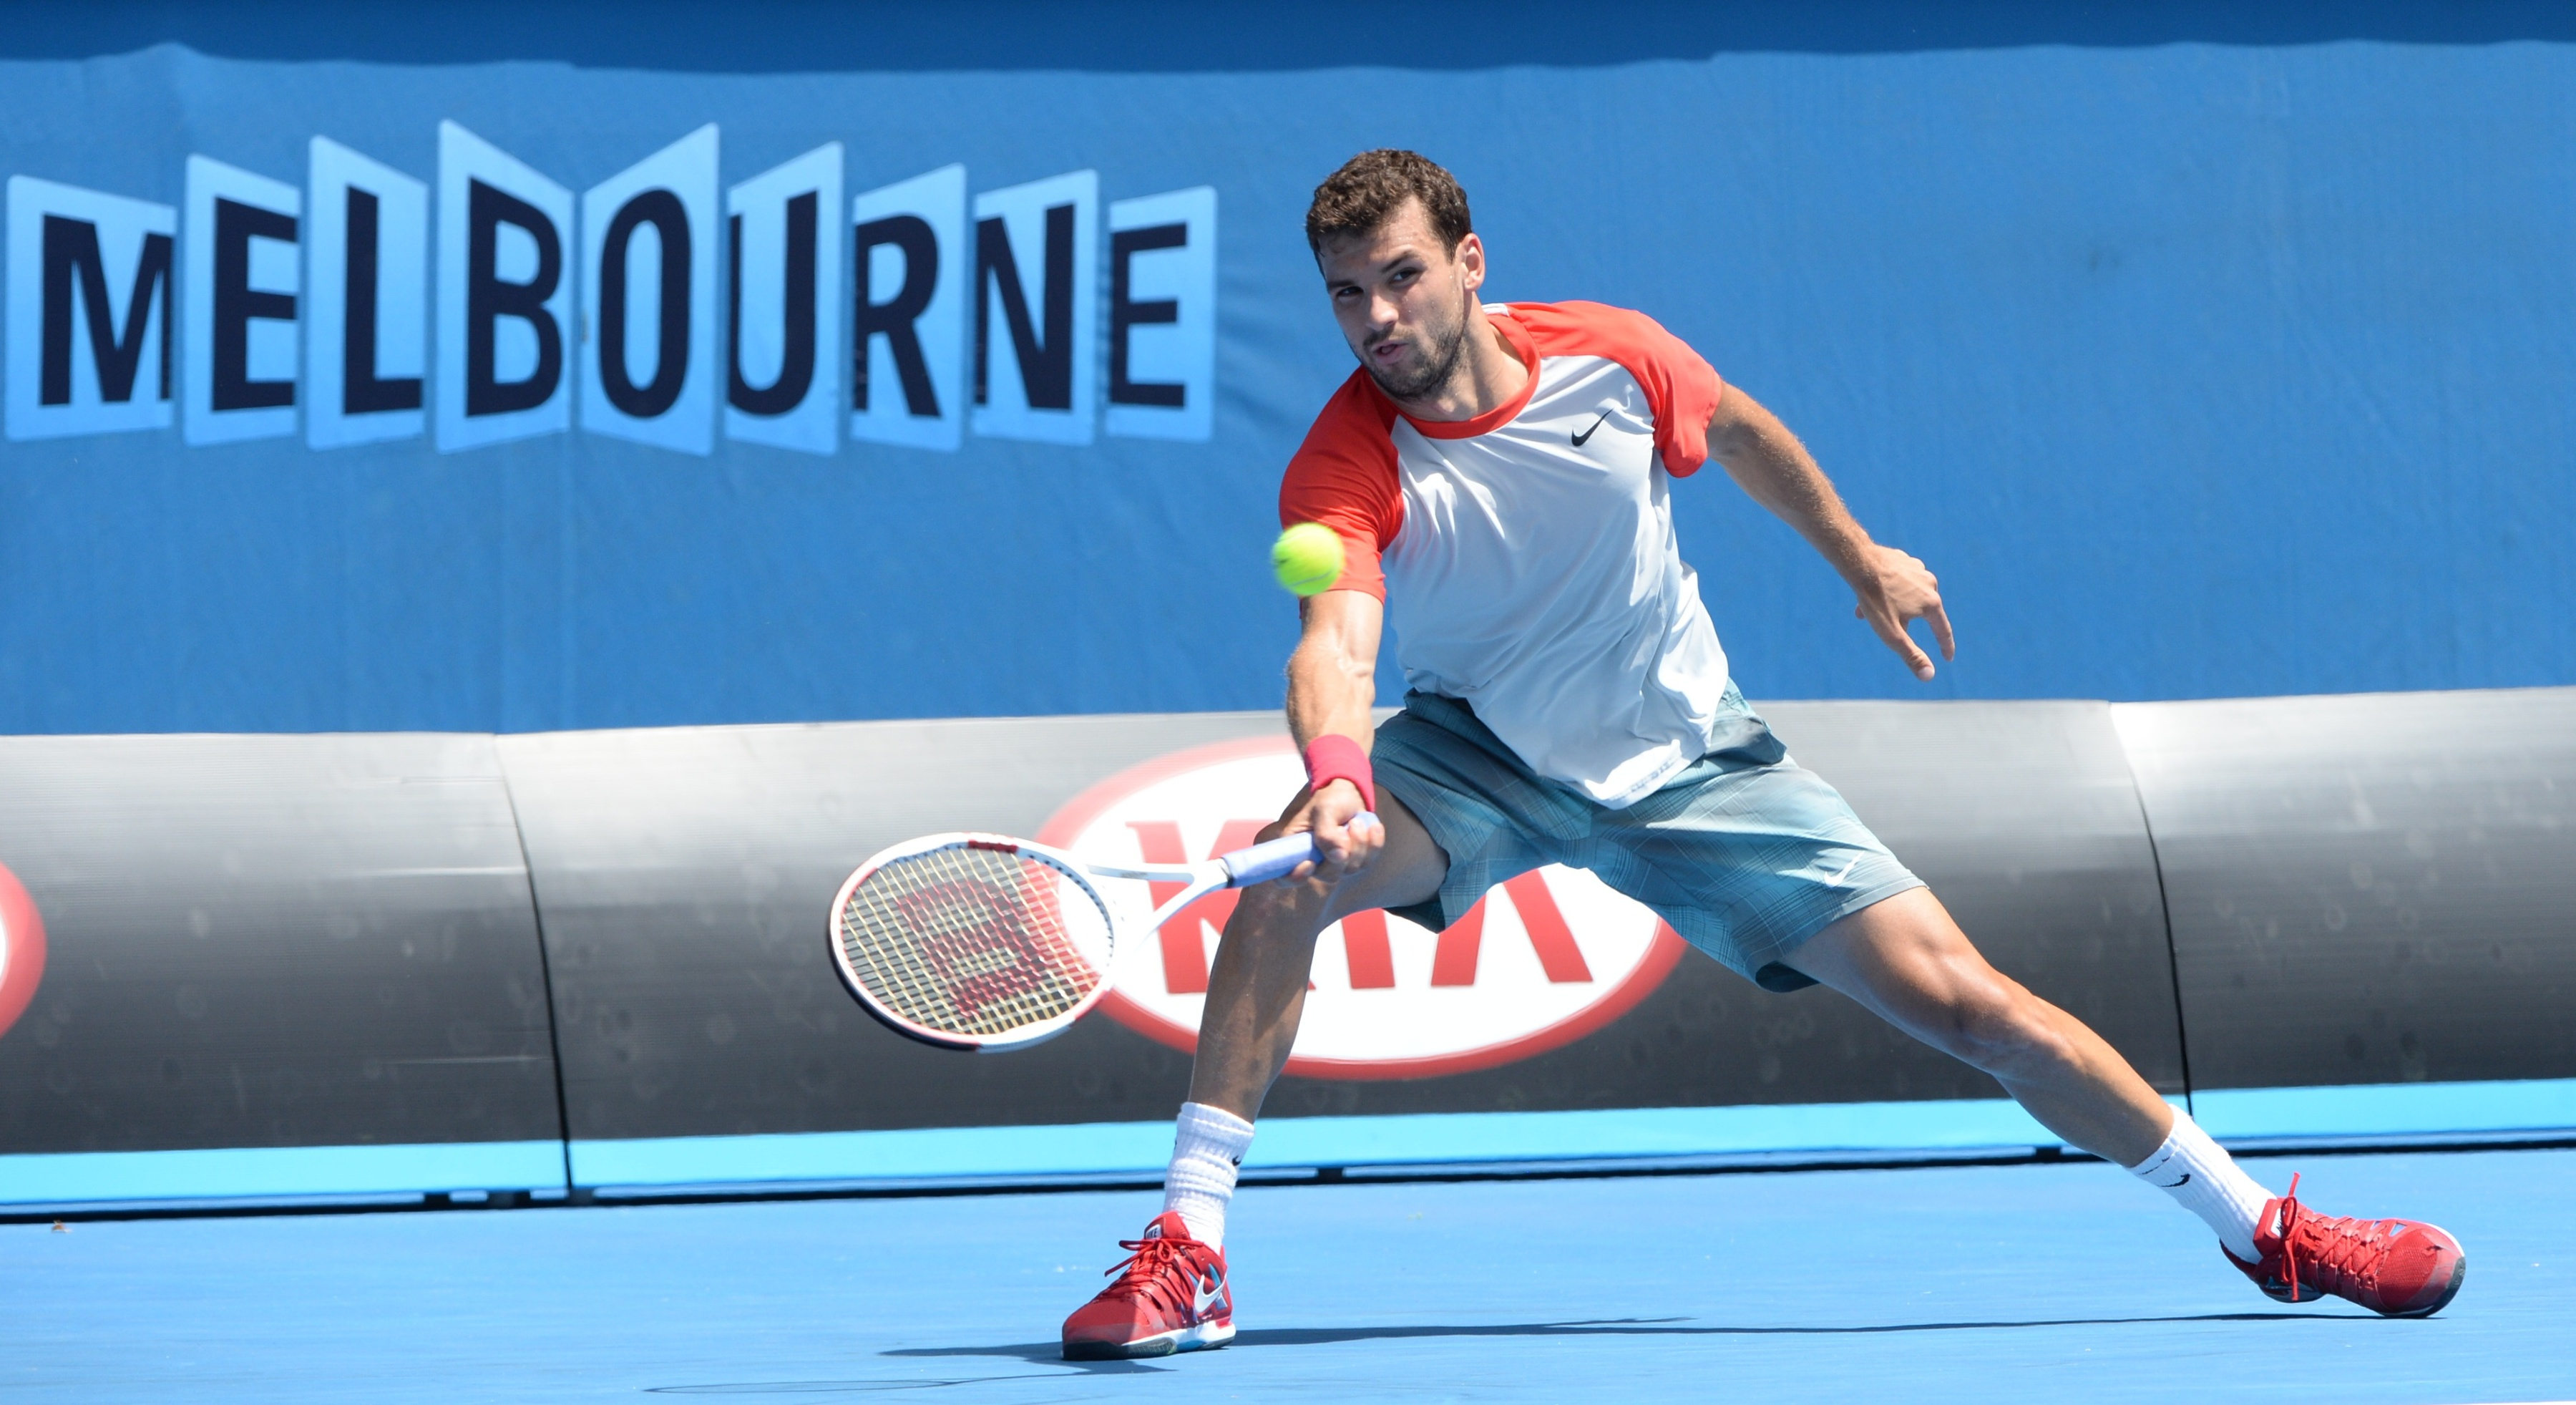 Dimitrov's Nike baseball shirts were a great fit at the Australian Open.